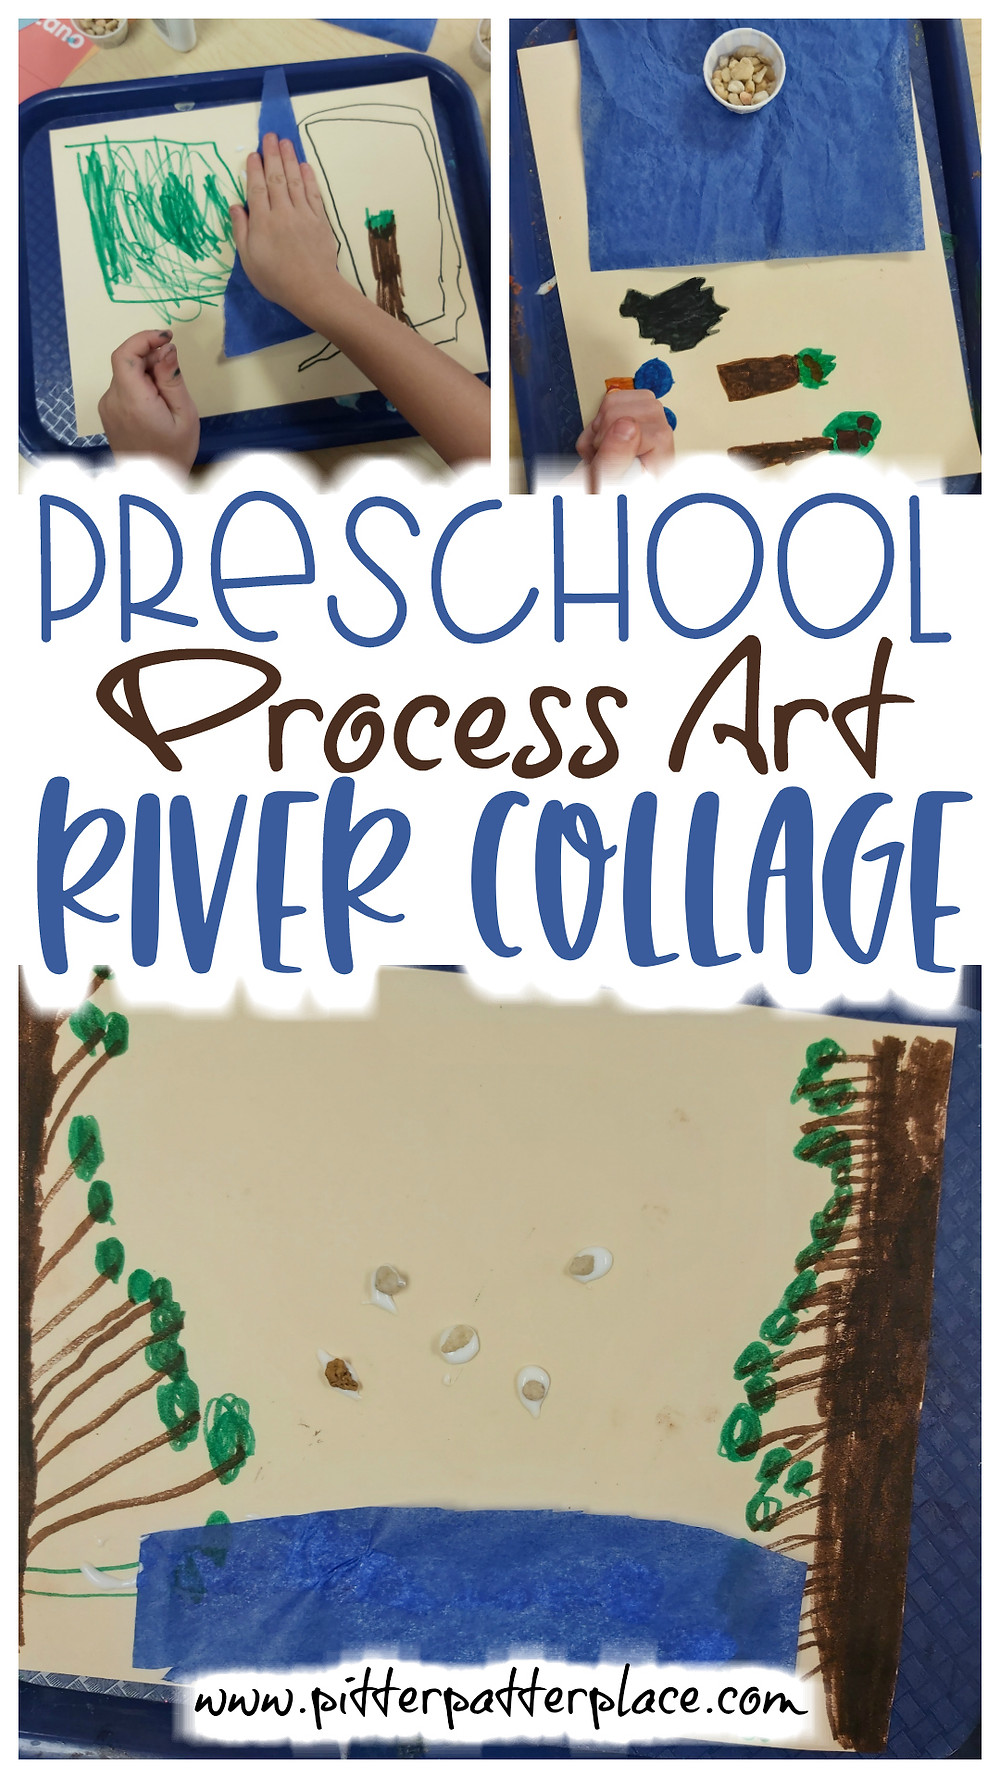 collage of preschool river art with text: Preschool Process Art River Collage